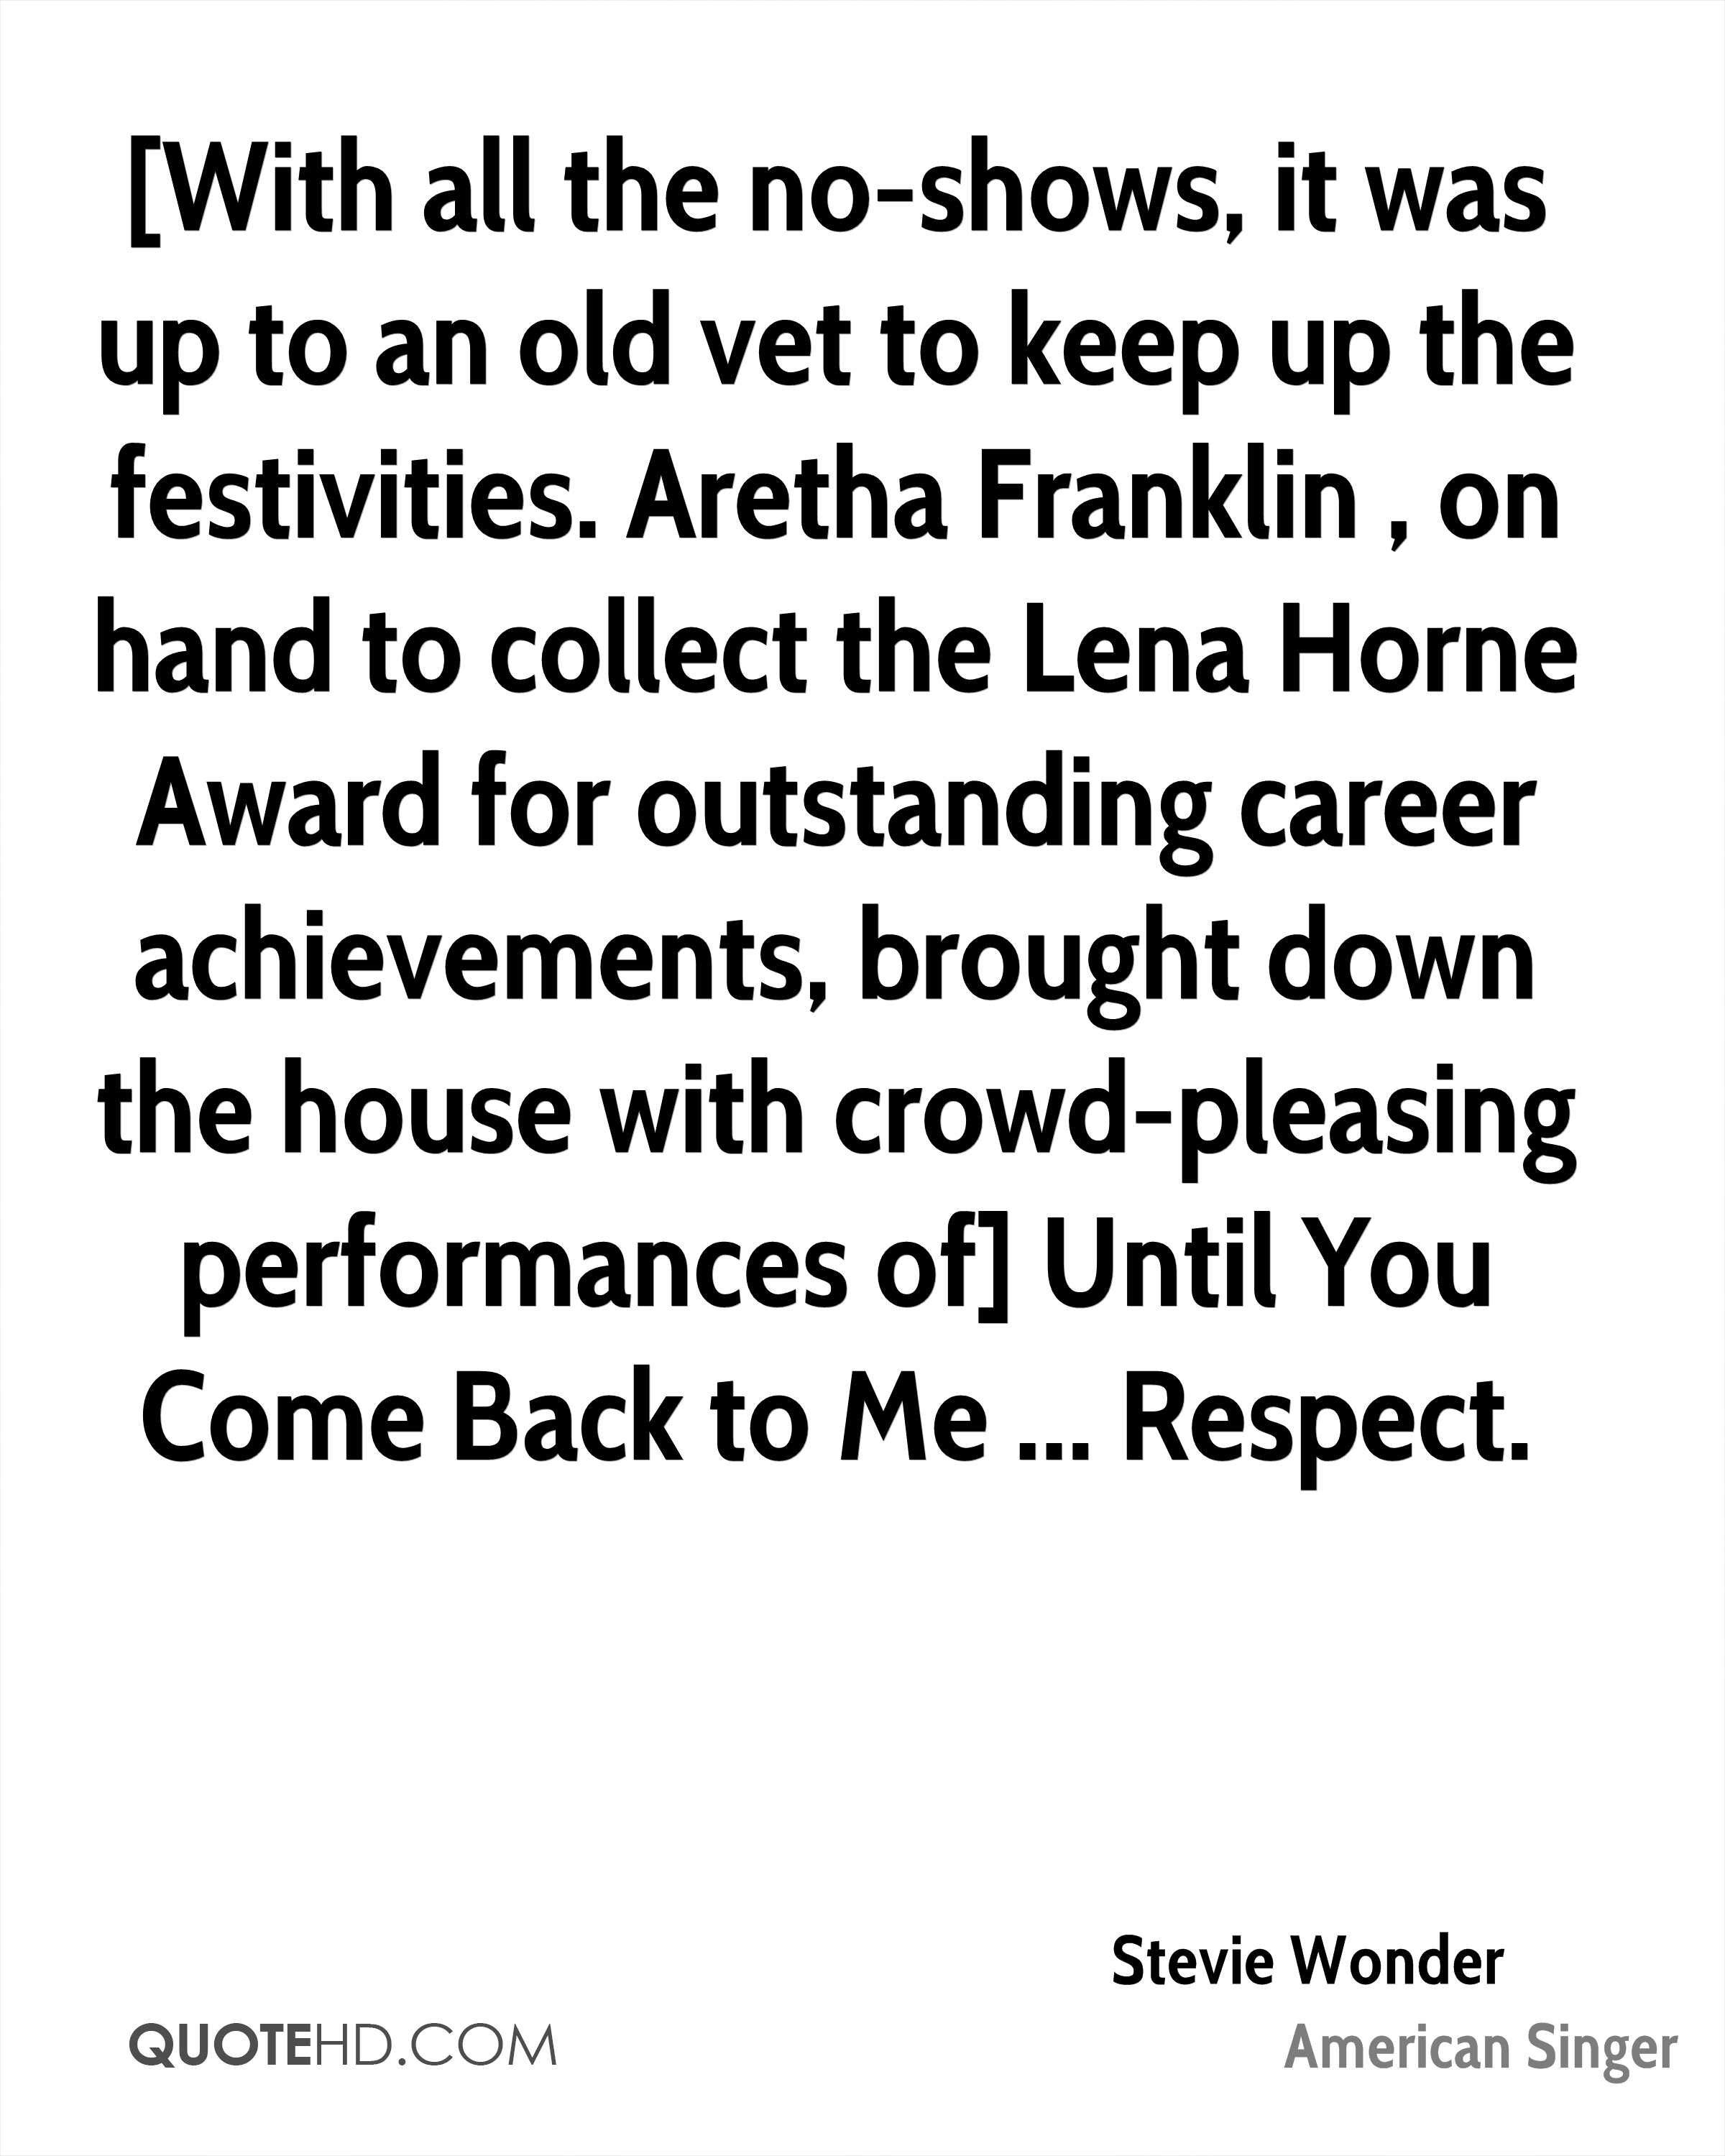 [With all the no-shows, it was up to an old vet to keep up the festivities. Aretha Franklin , on hand to collect the Lena Horne Award for outstanding career achievements, brought down the house with crowd-pleasing performances of] Until You Come Back to Me ... Respect.